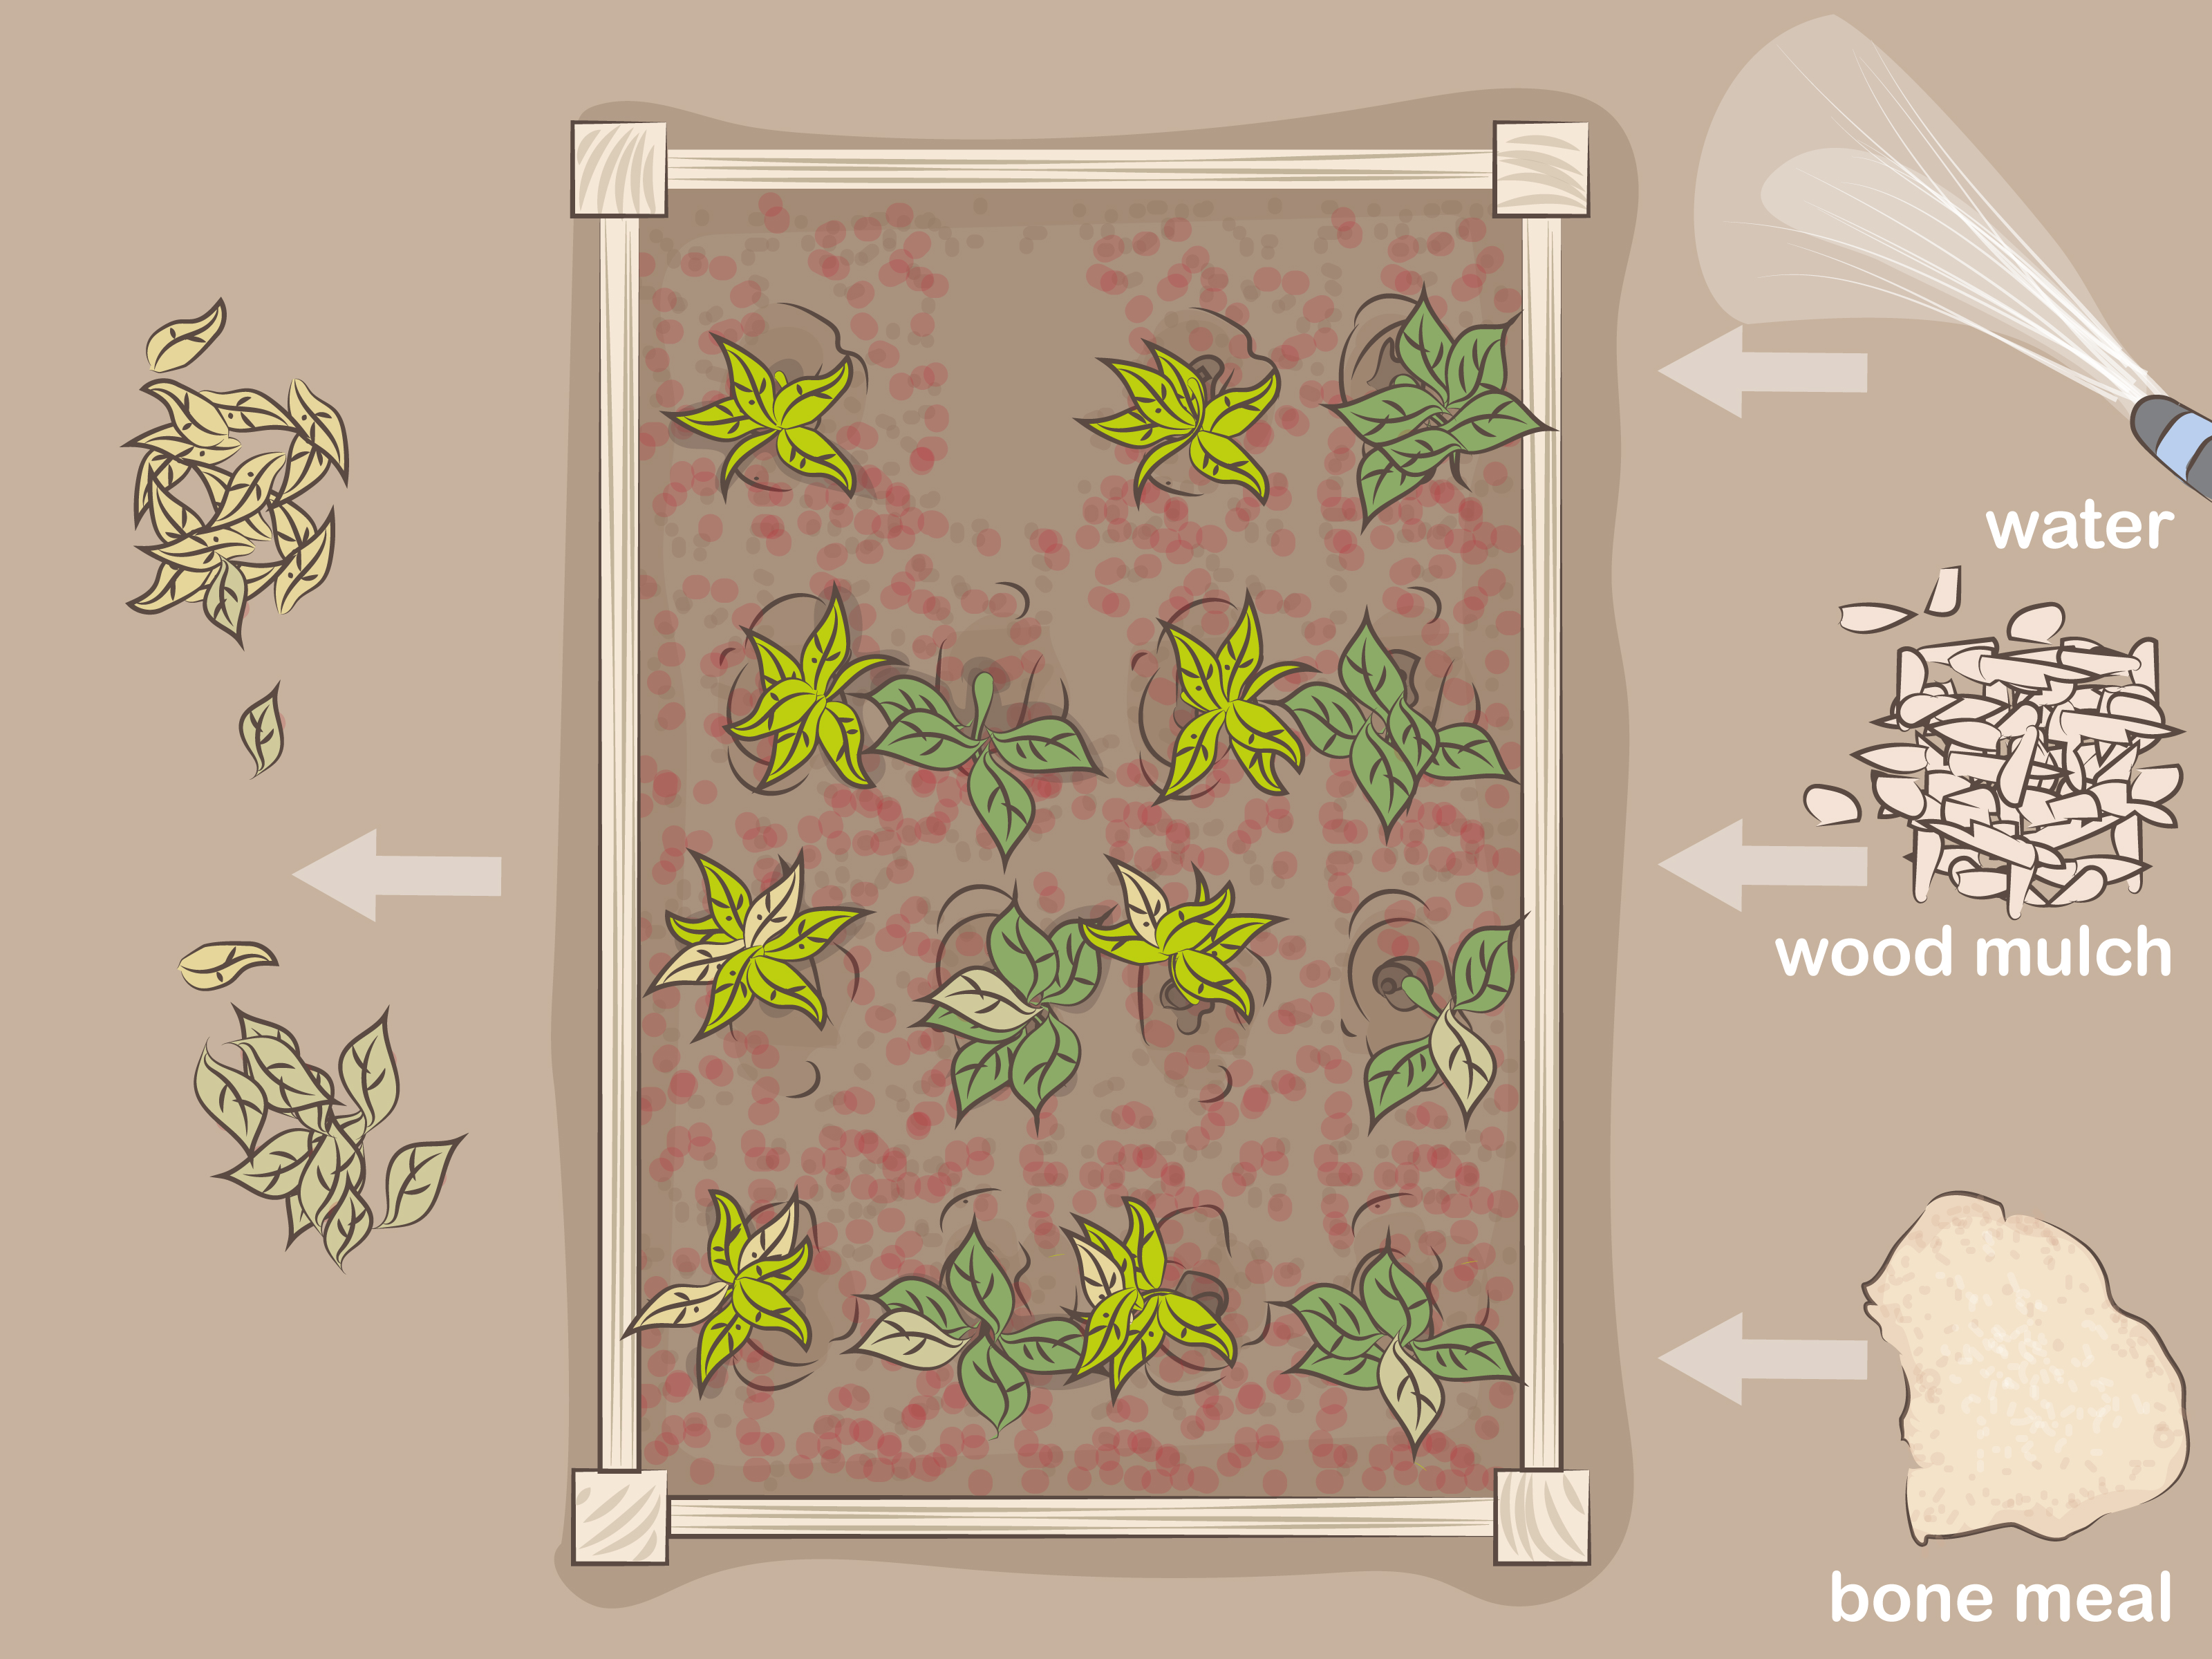 Assorted How To Use Blood Steps Wikihow Blood Meal Fertilizer Rabbits Blood Meal Fertilizer Dogs houzz-03 Blood Meal Fertilizer